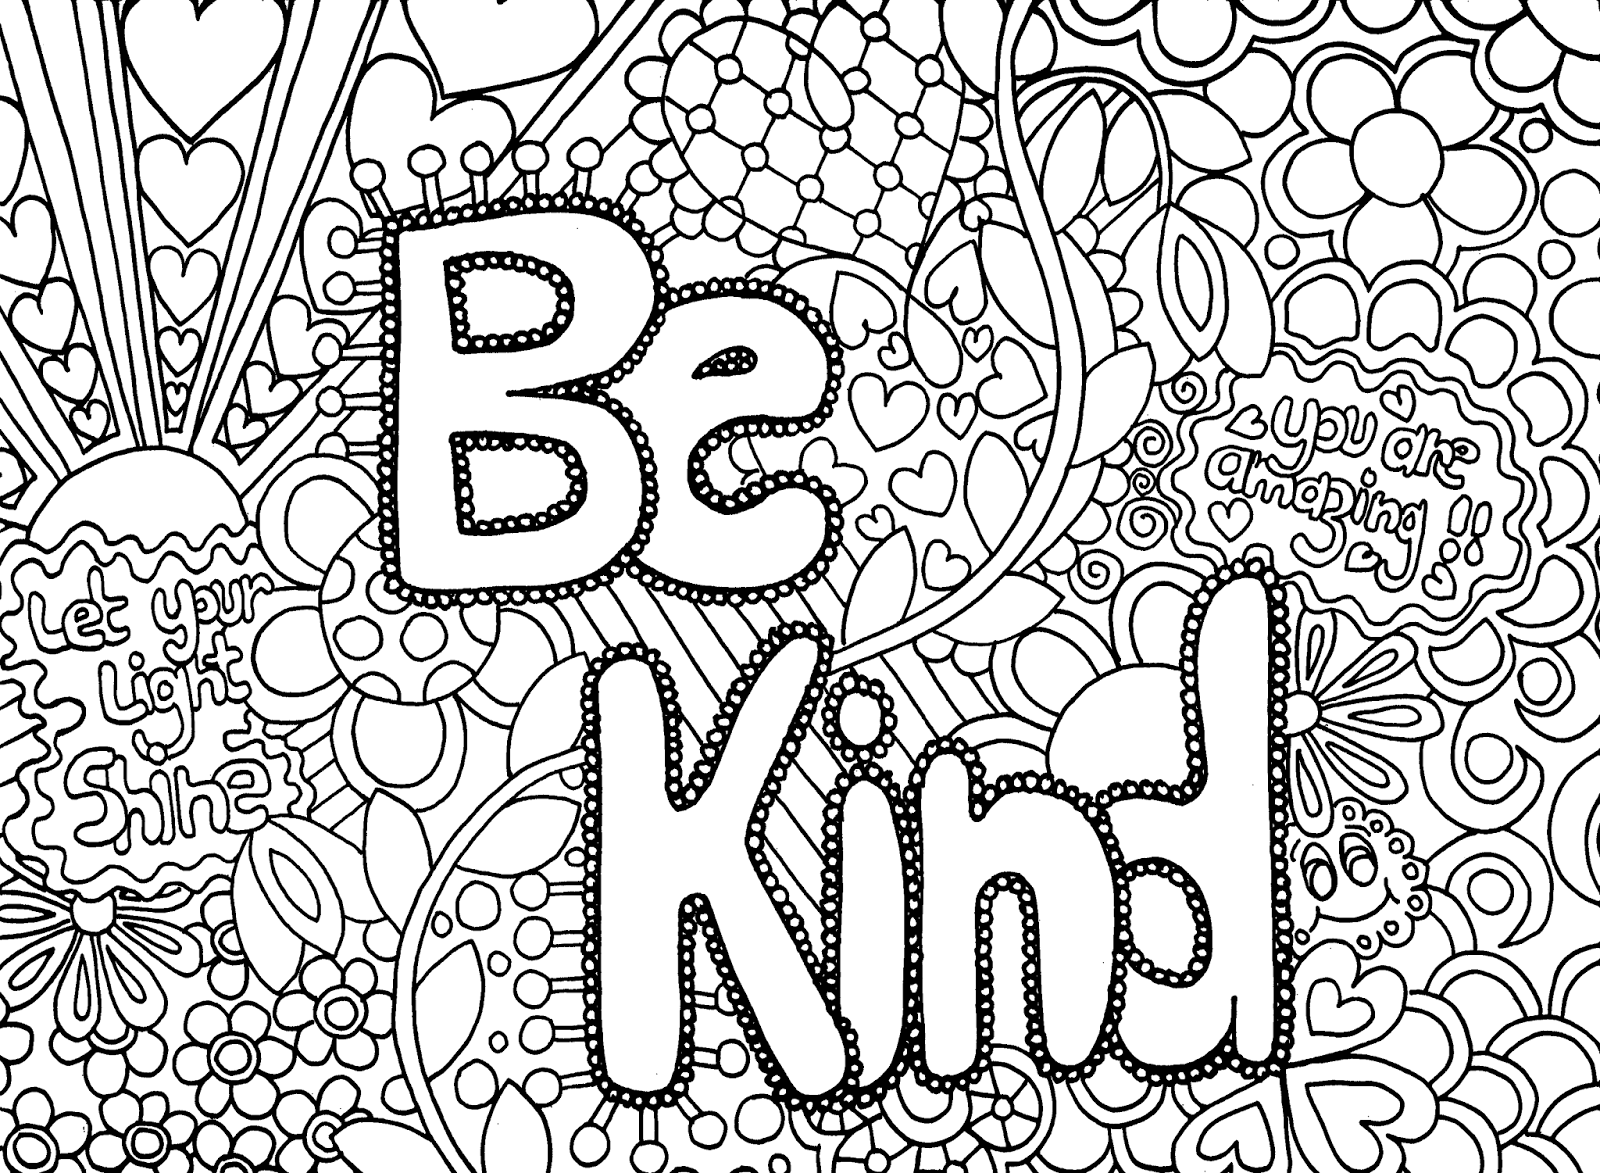 Coloring Pages Delectable Hard Coloring Pages For Adults  Best Coloring Pages For Kids Inspiration Design